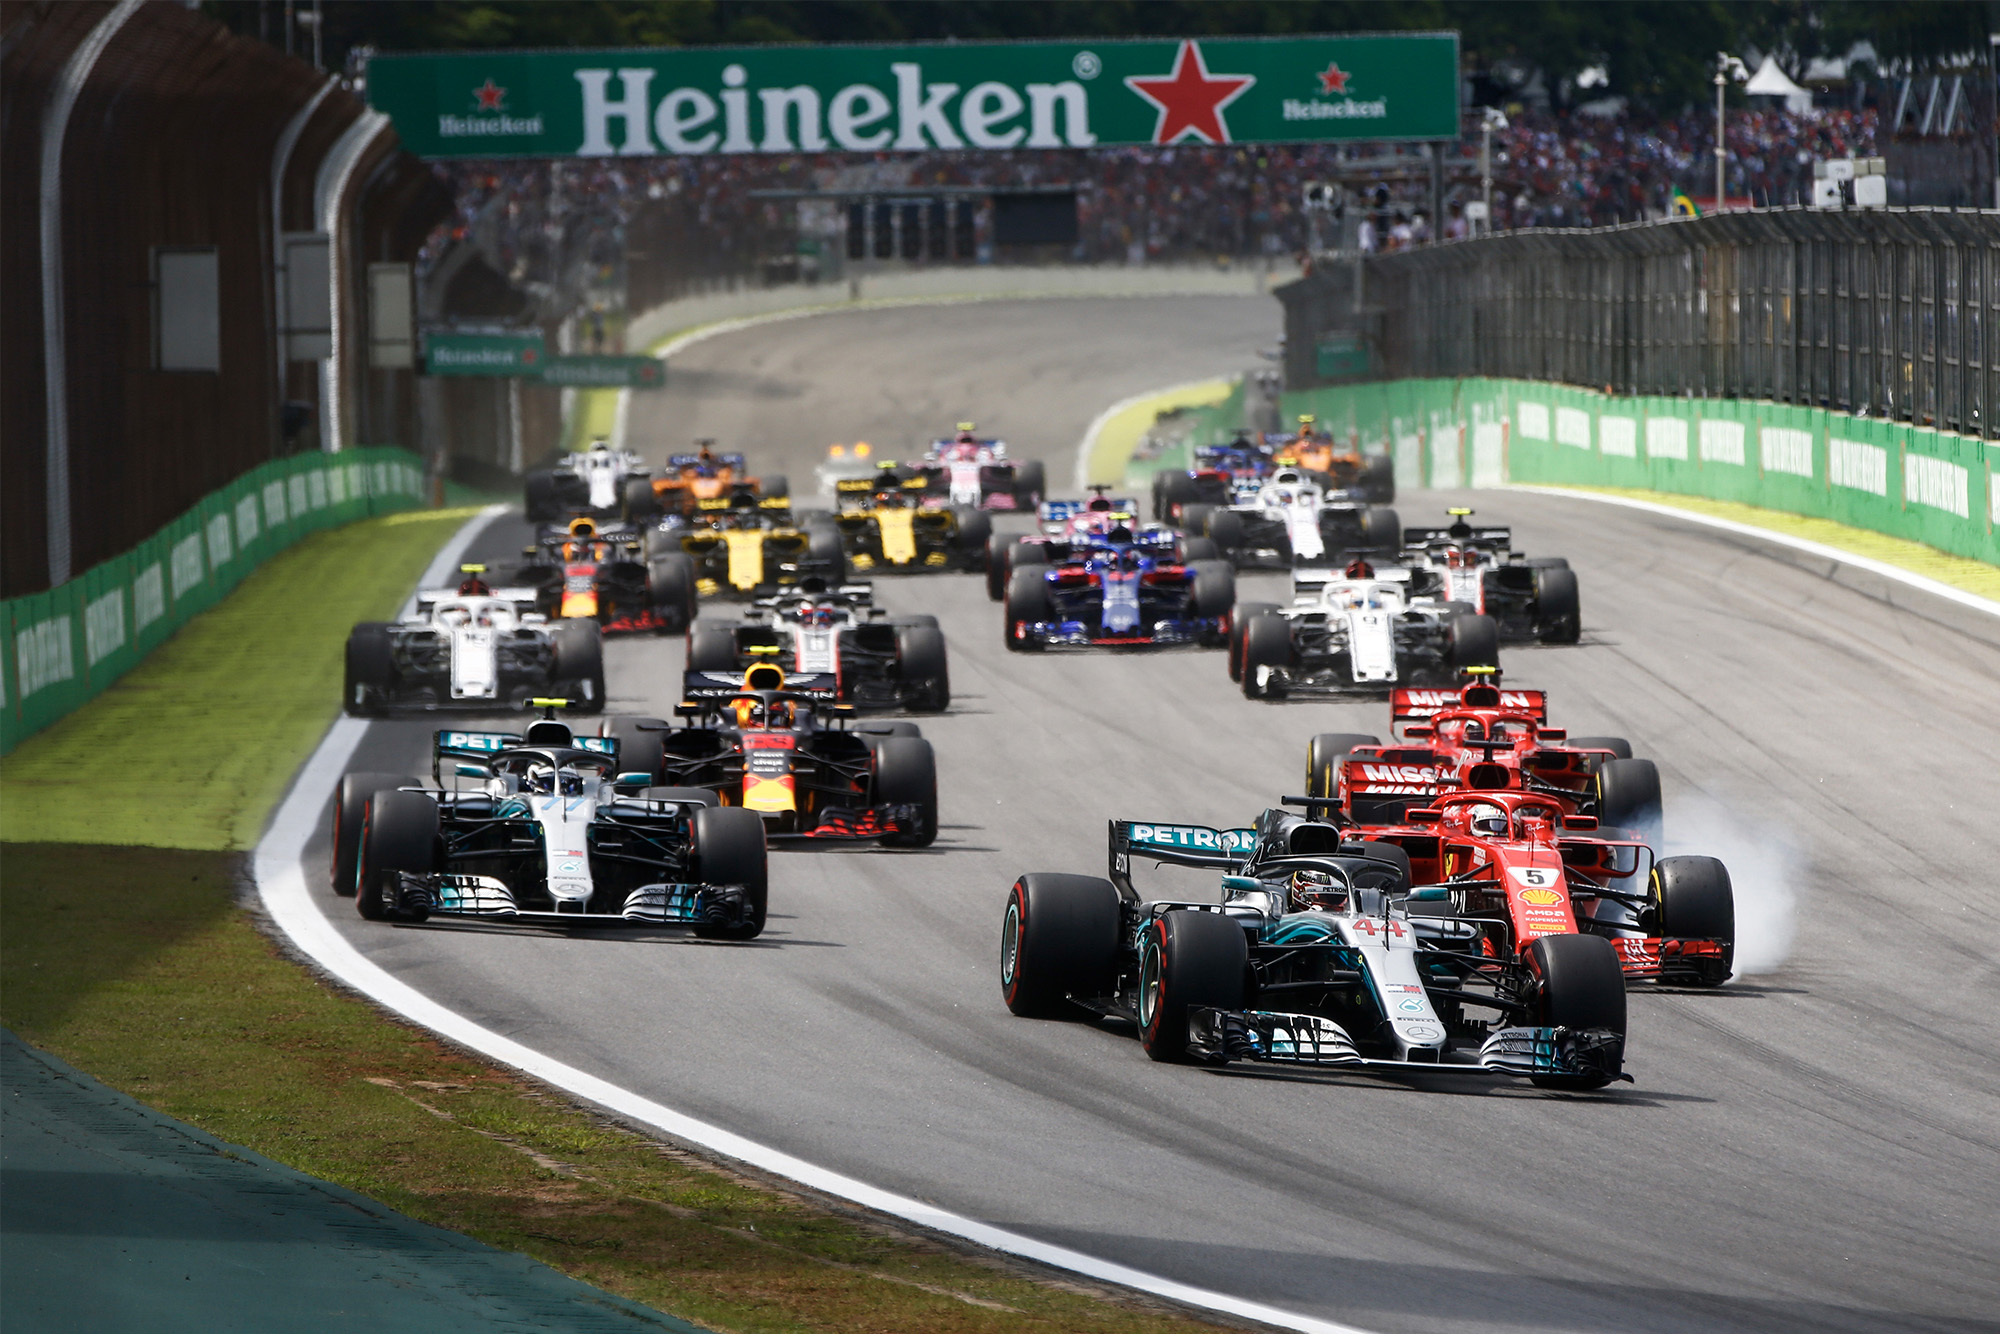 2018 Brazilian Grand Prix report